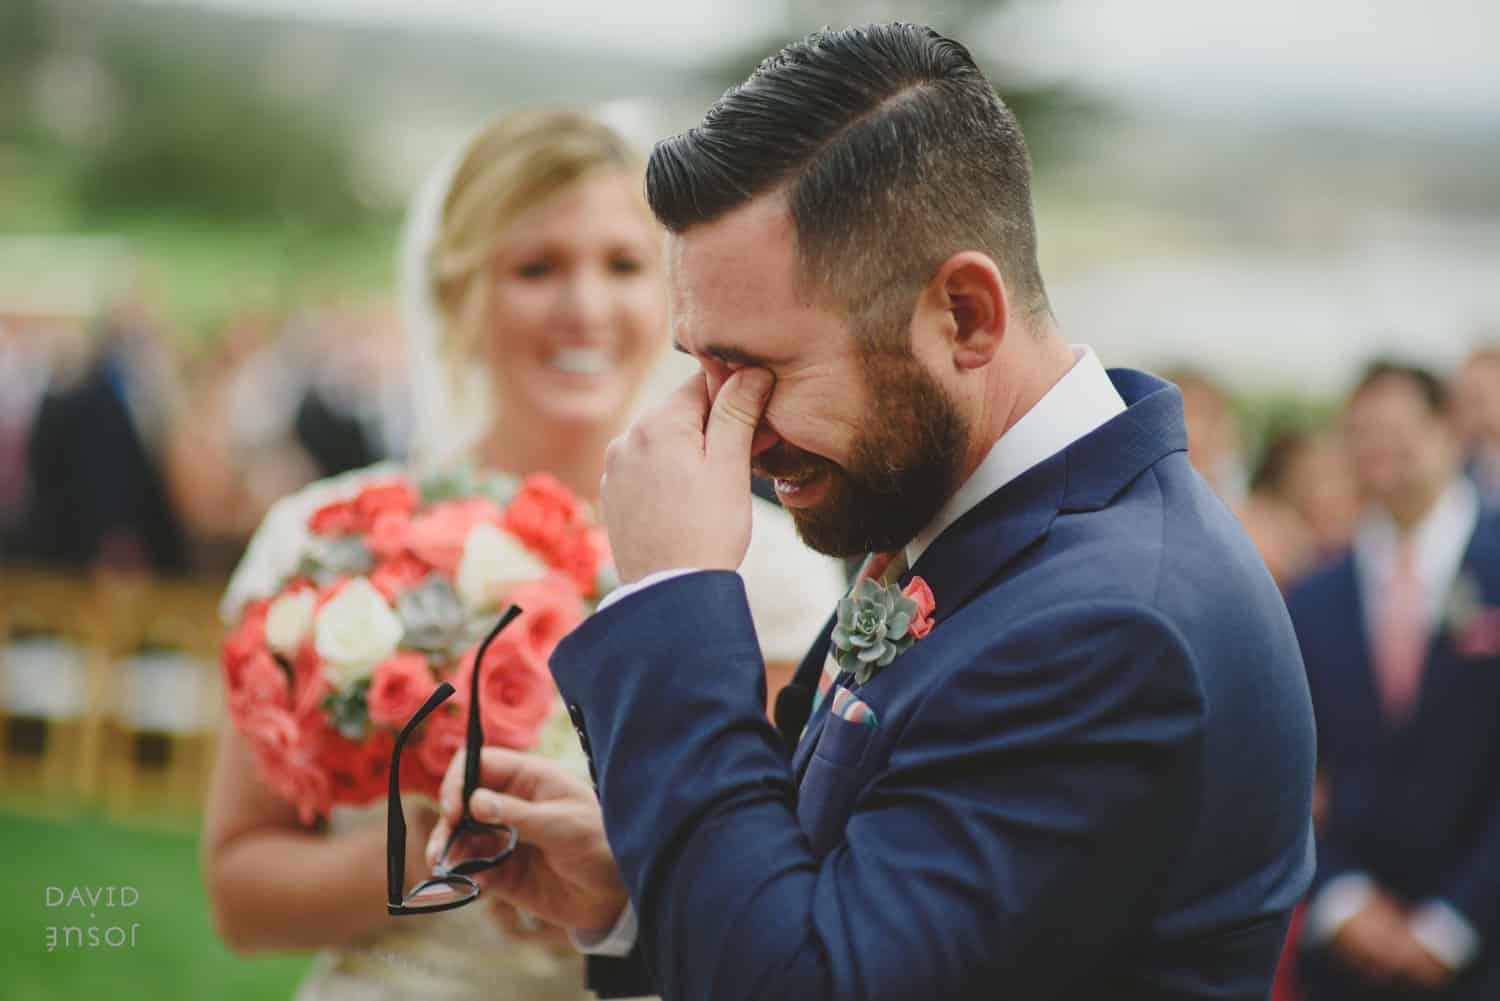 Groom getting emotional at his wedding ceremony